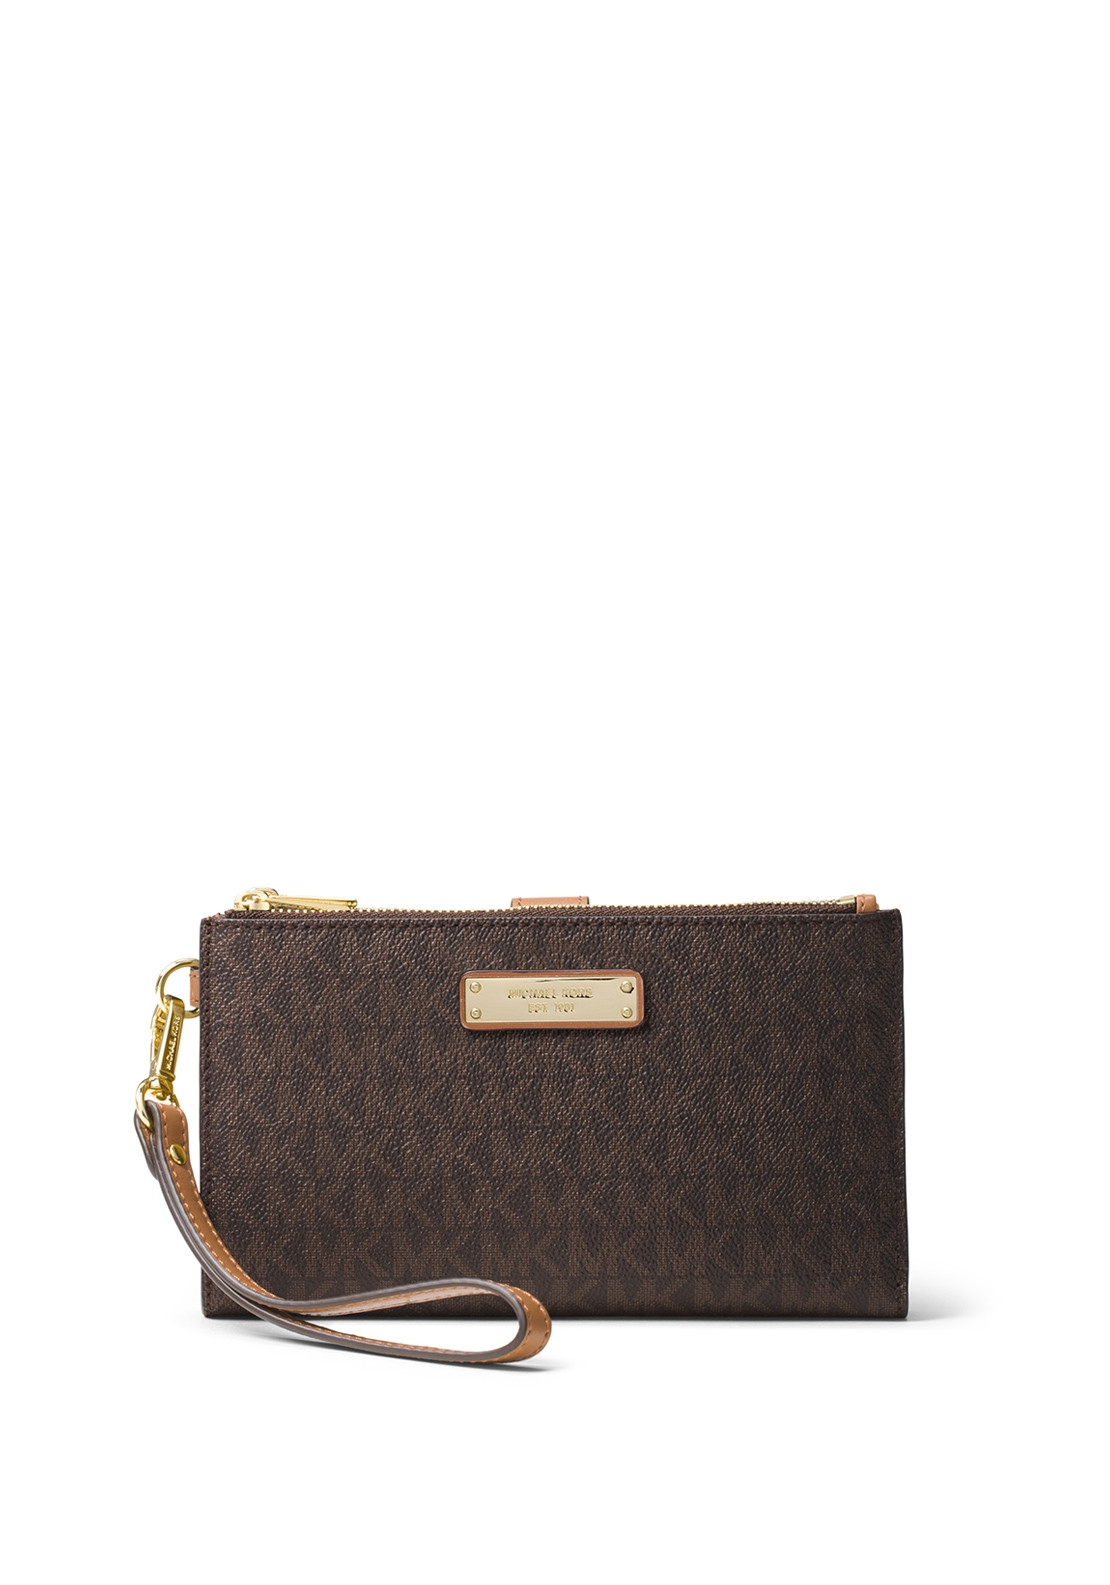 4cb5798b0497 MICHAEL Michael Kors Adele Leather Wristlet Wallet, Brown. Be the first to  review this product